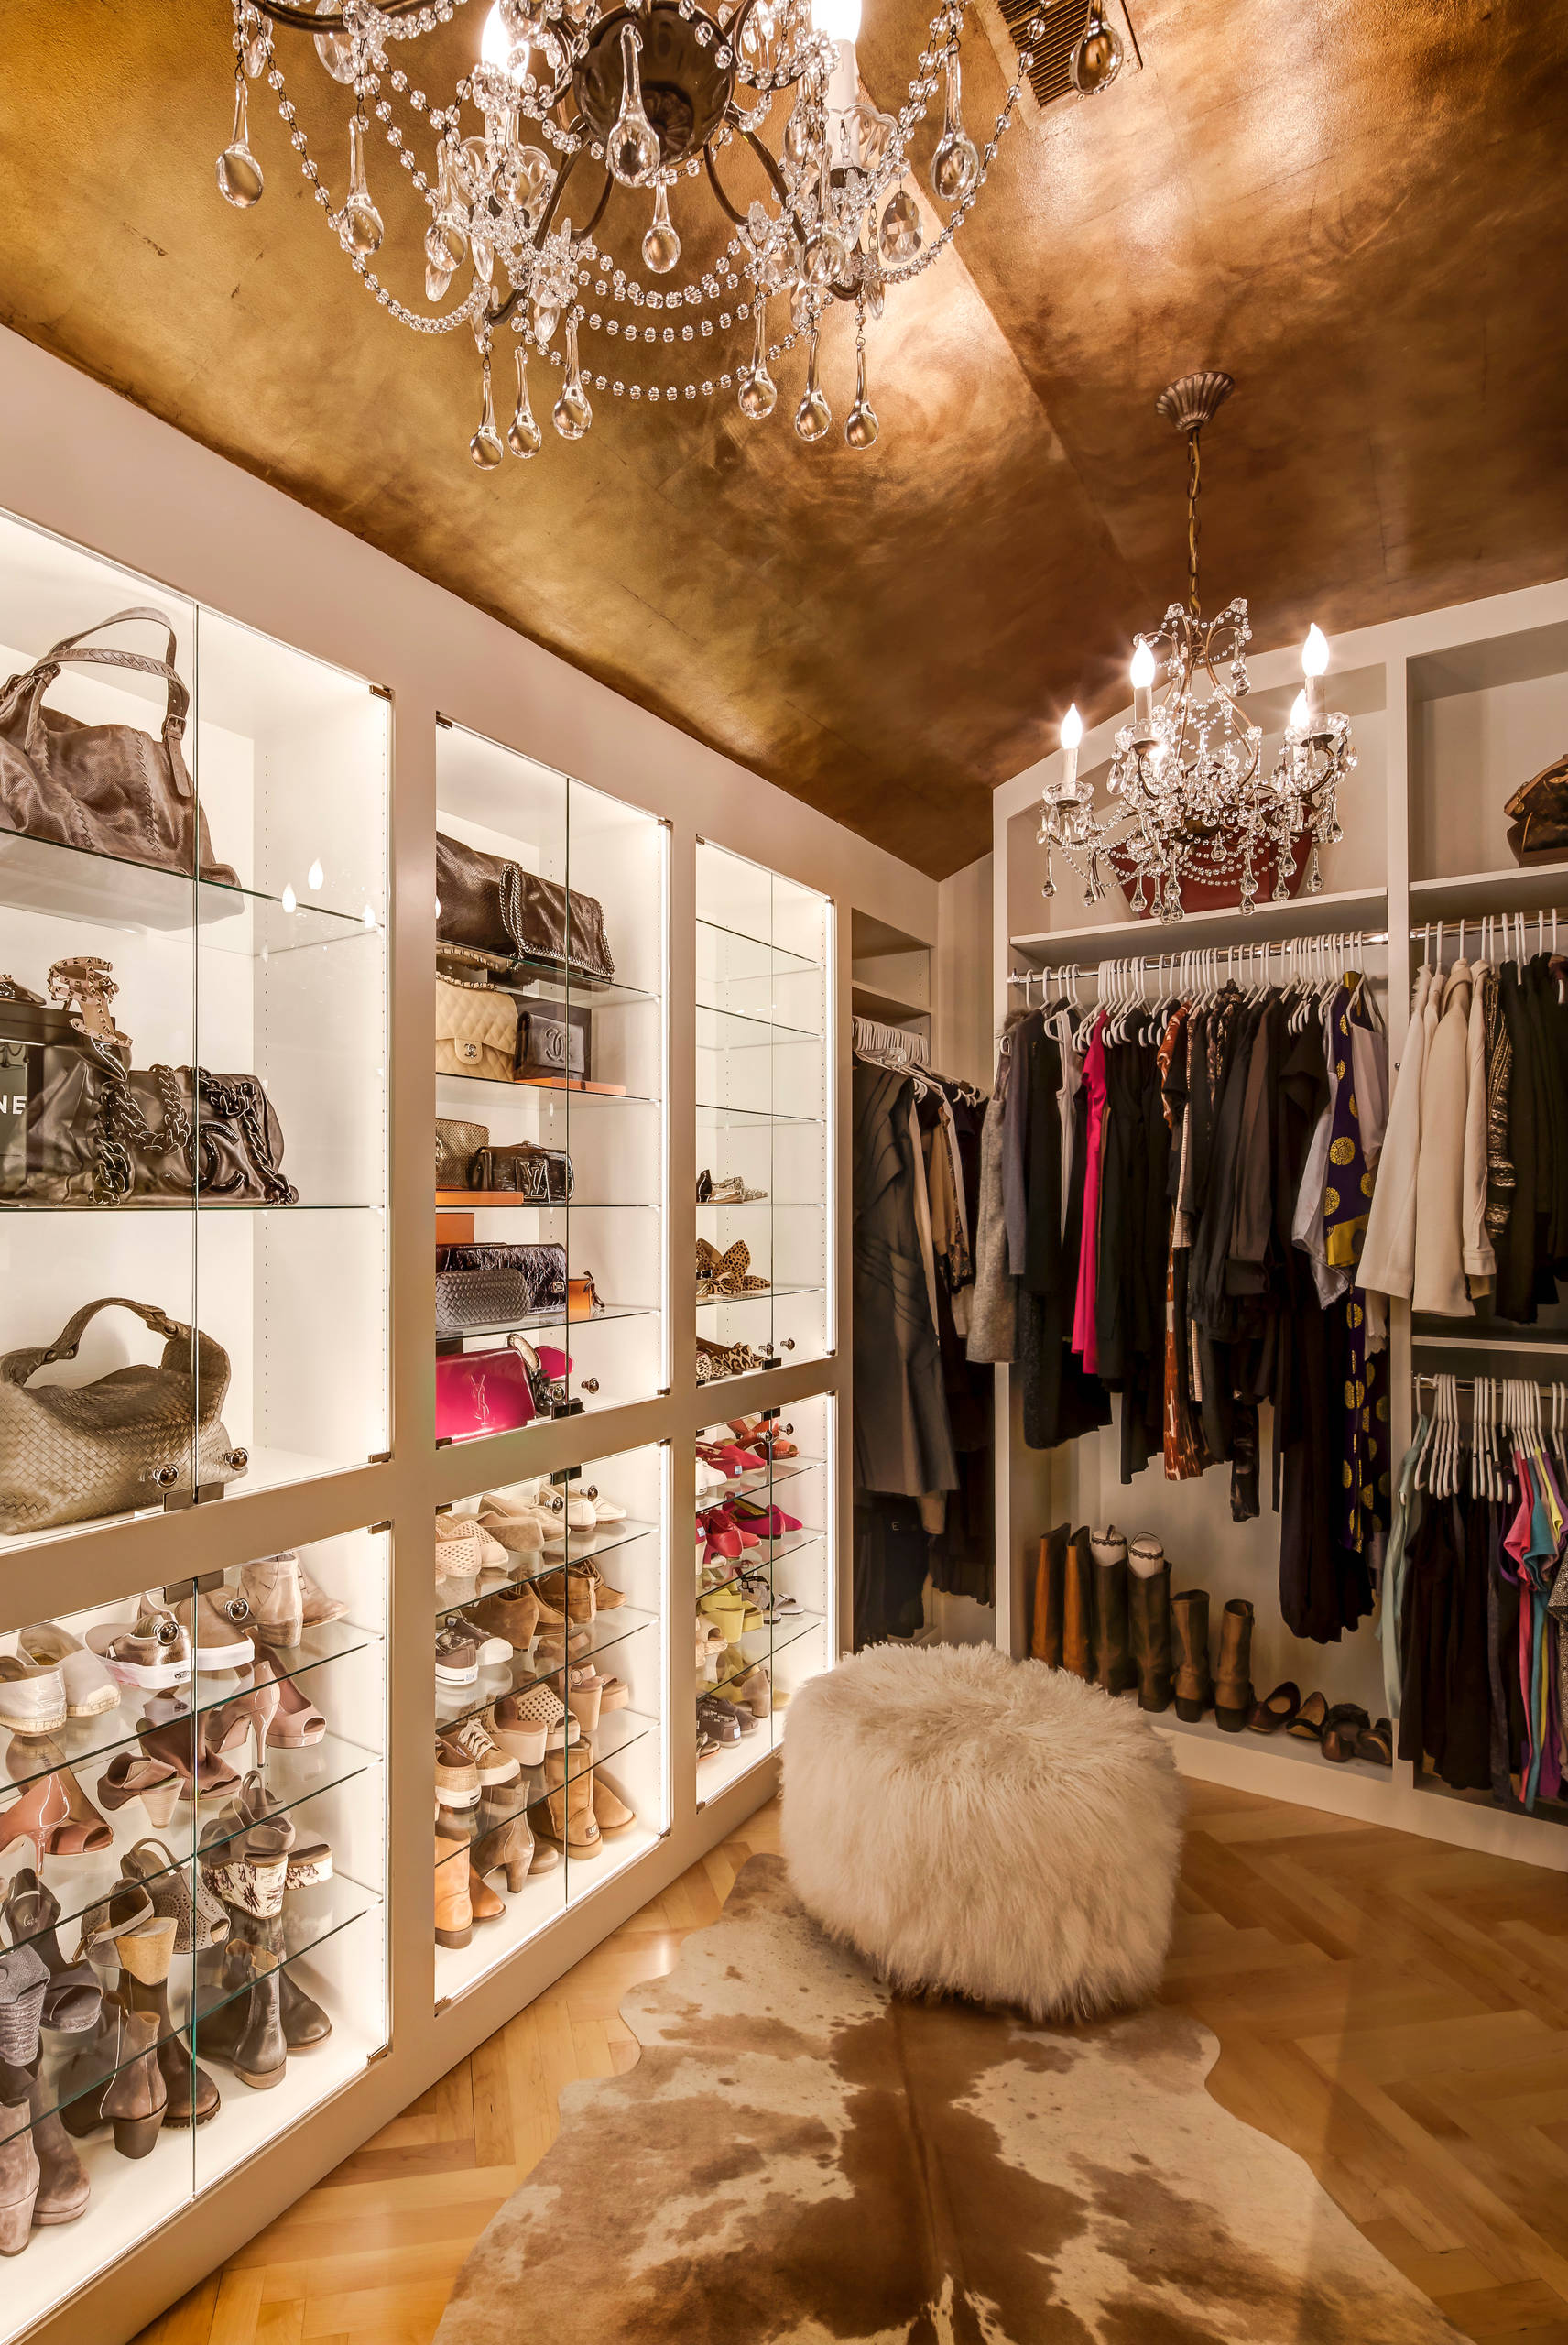 kylie jenner glam room closet decor ideas